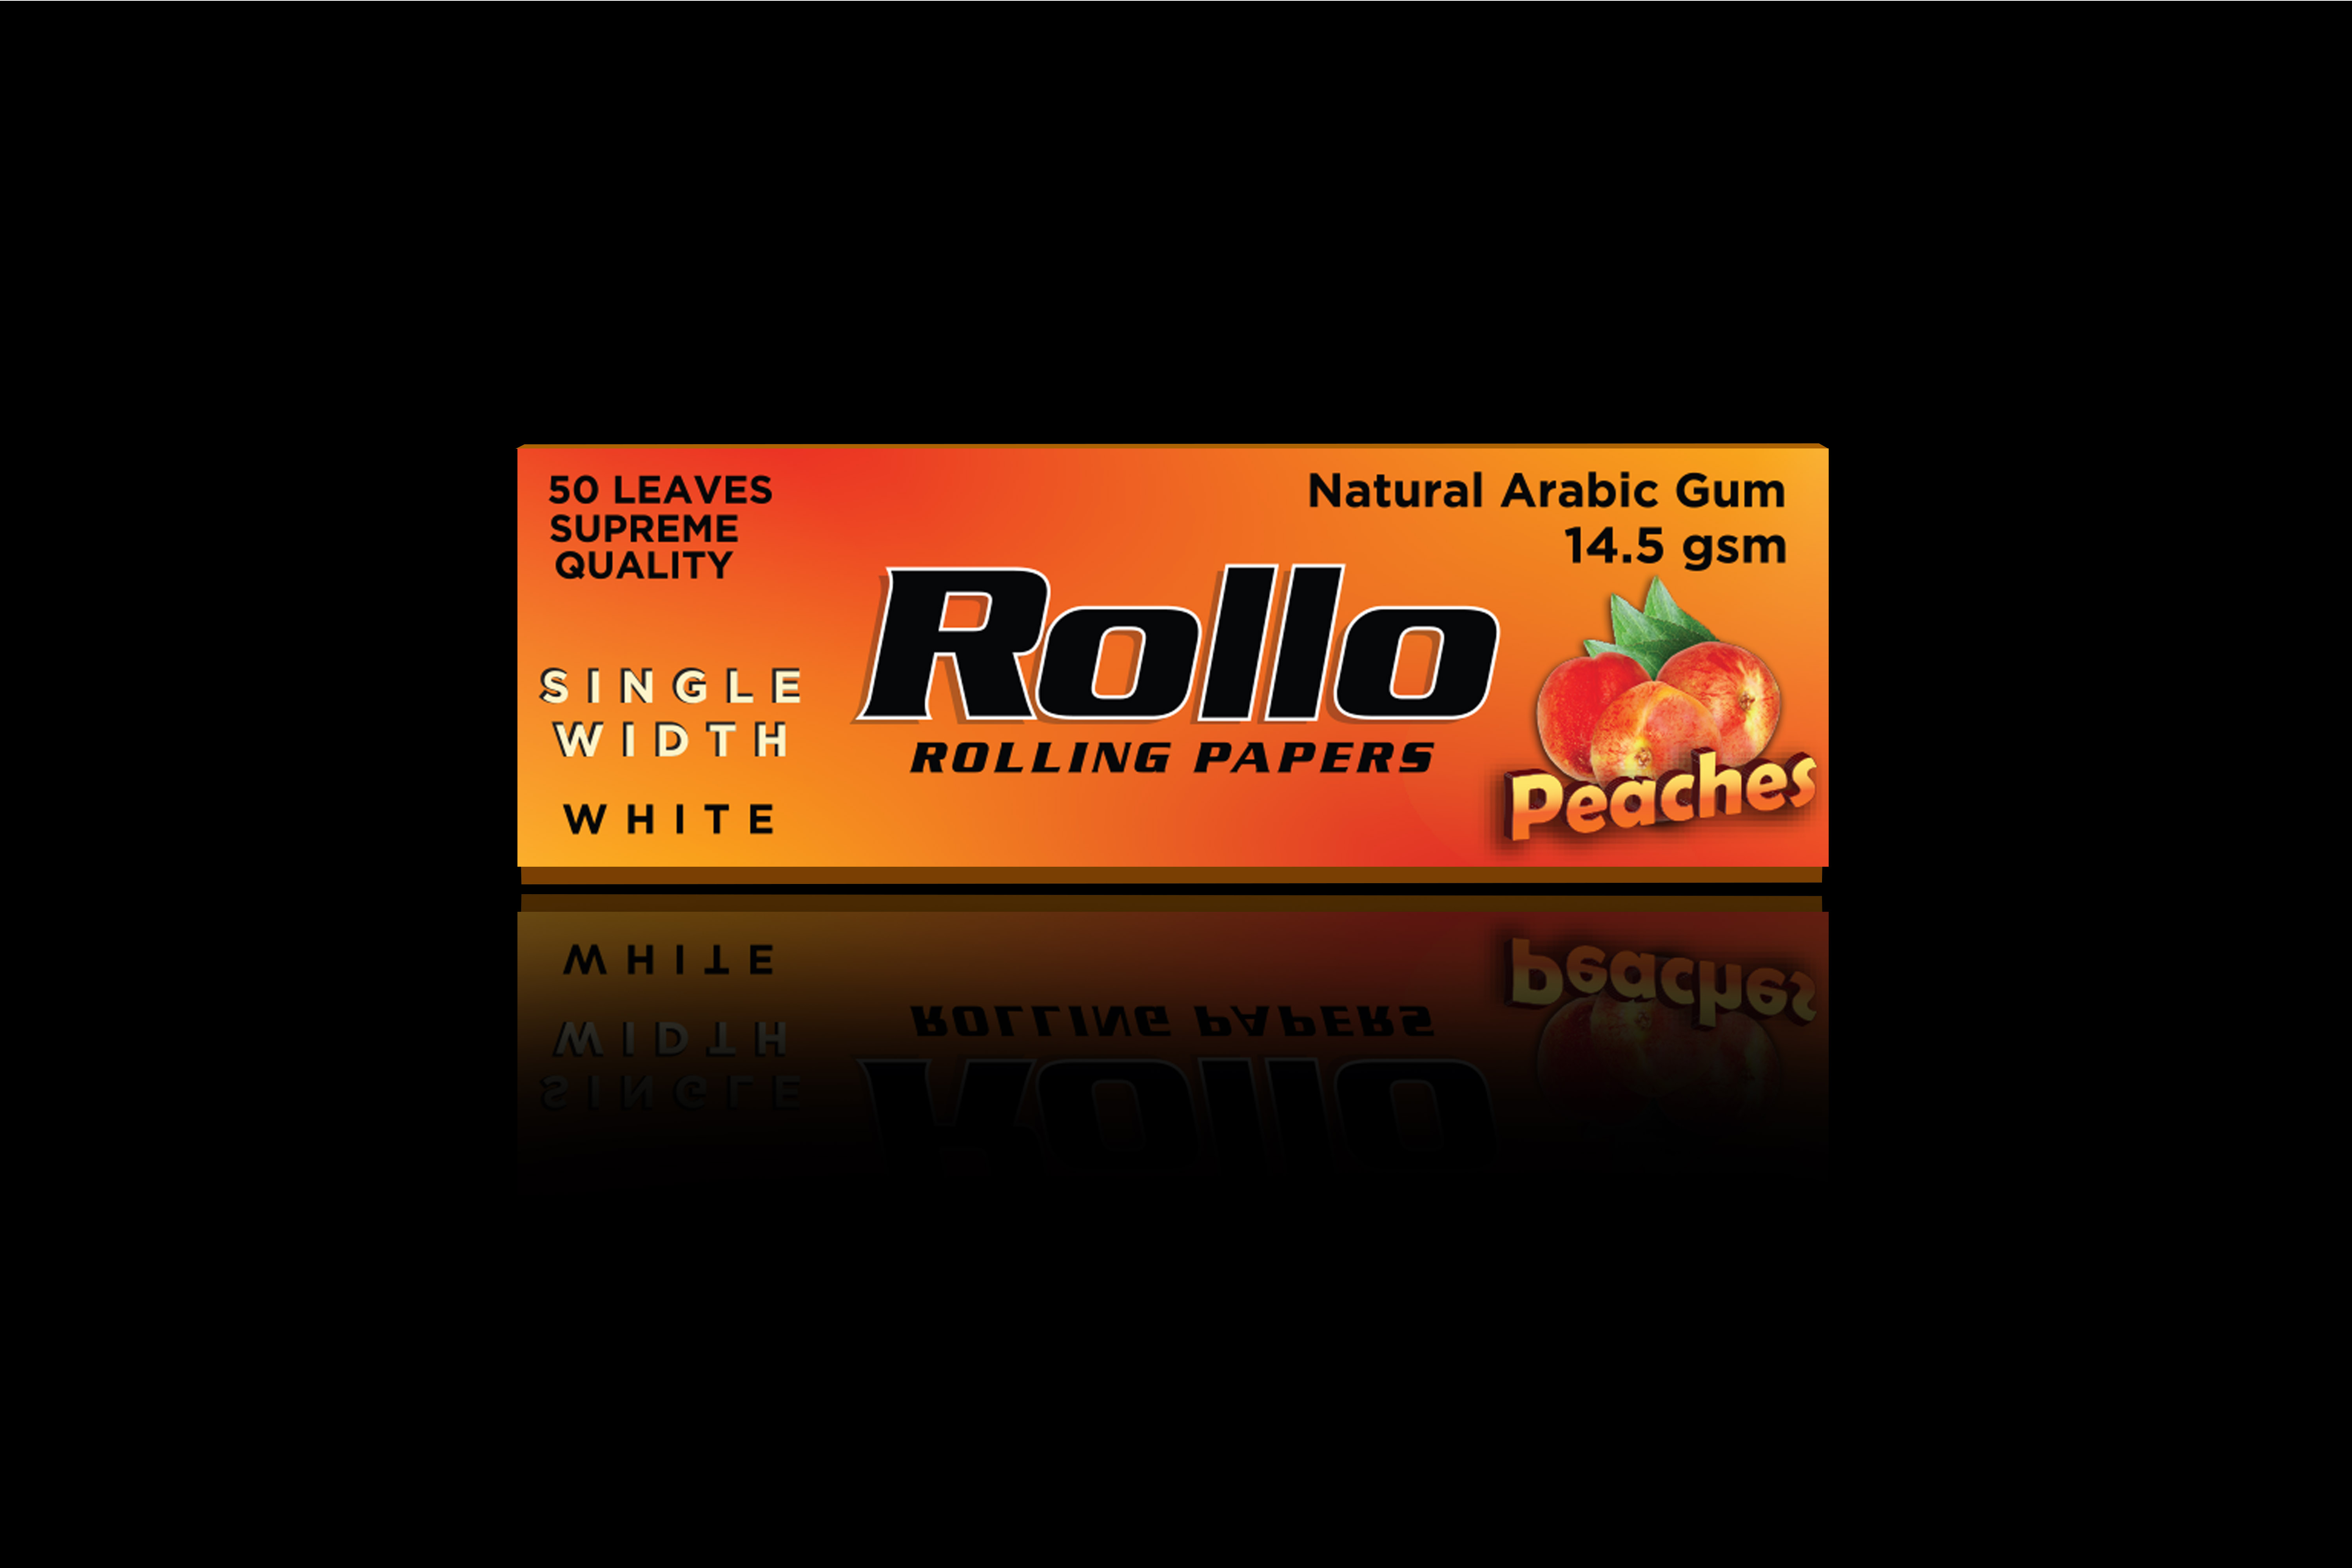 Rolling Papers, Peaches, Single Width 36 x 70